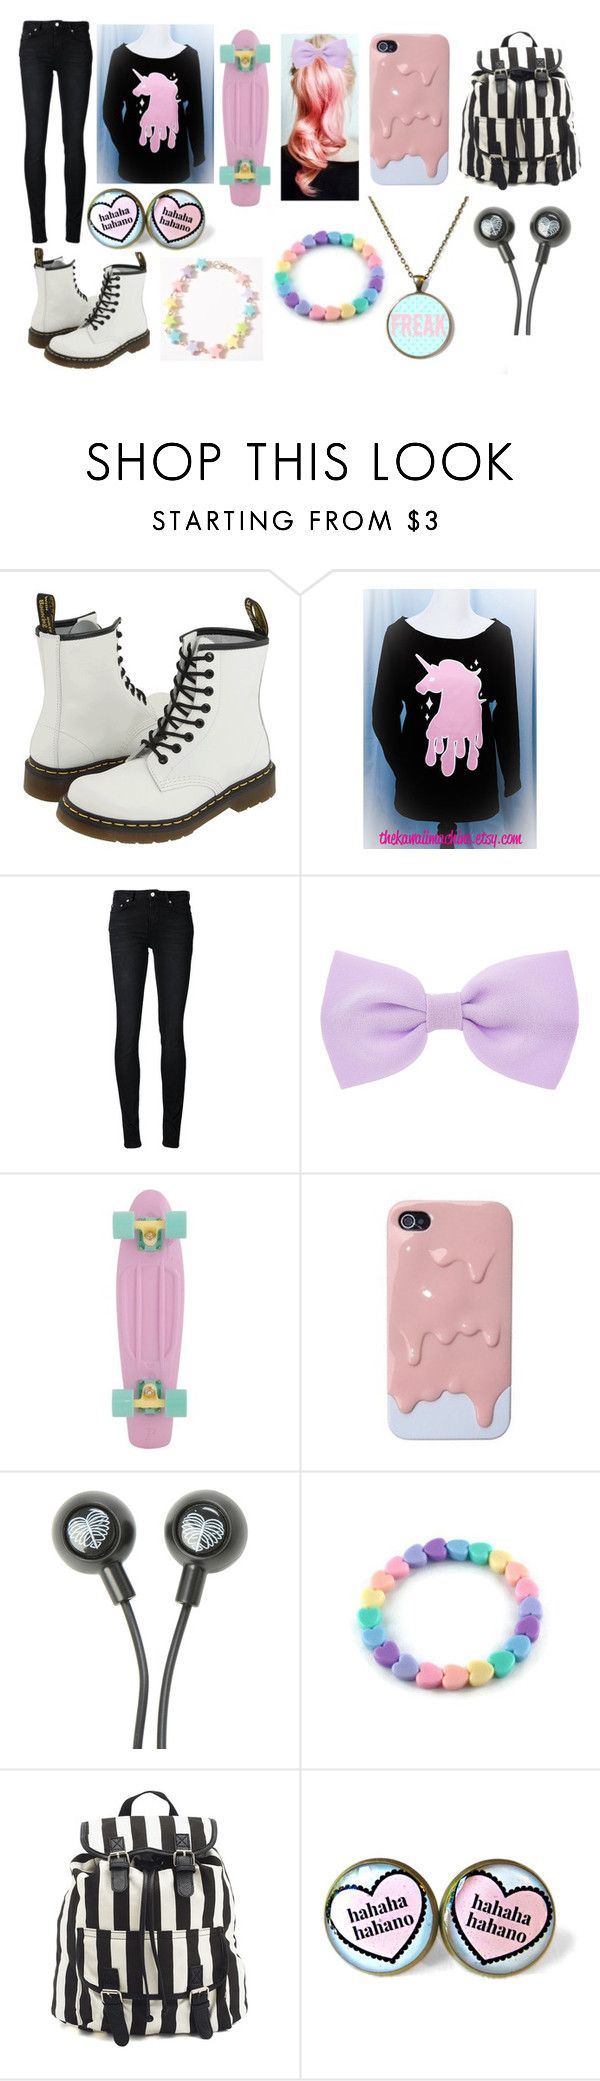 """""""pastel goth #8"""" by ironically-a-strider21 ❤ liked on Polyvore featuring Dr. Martens, BLK DNM, Accessorize and Charlotte Russe"""